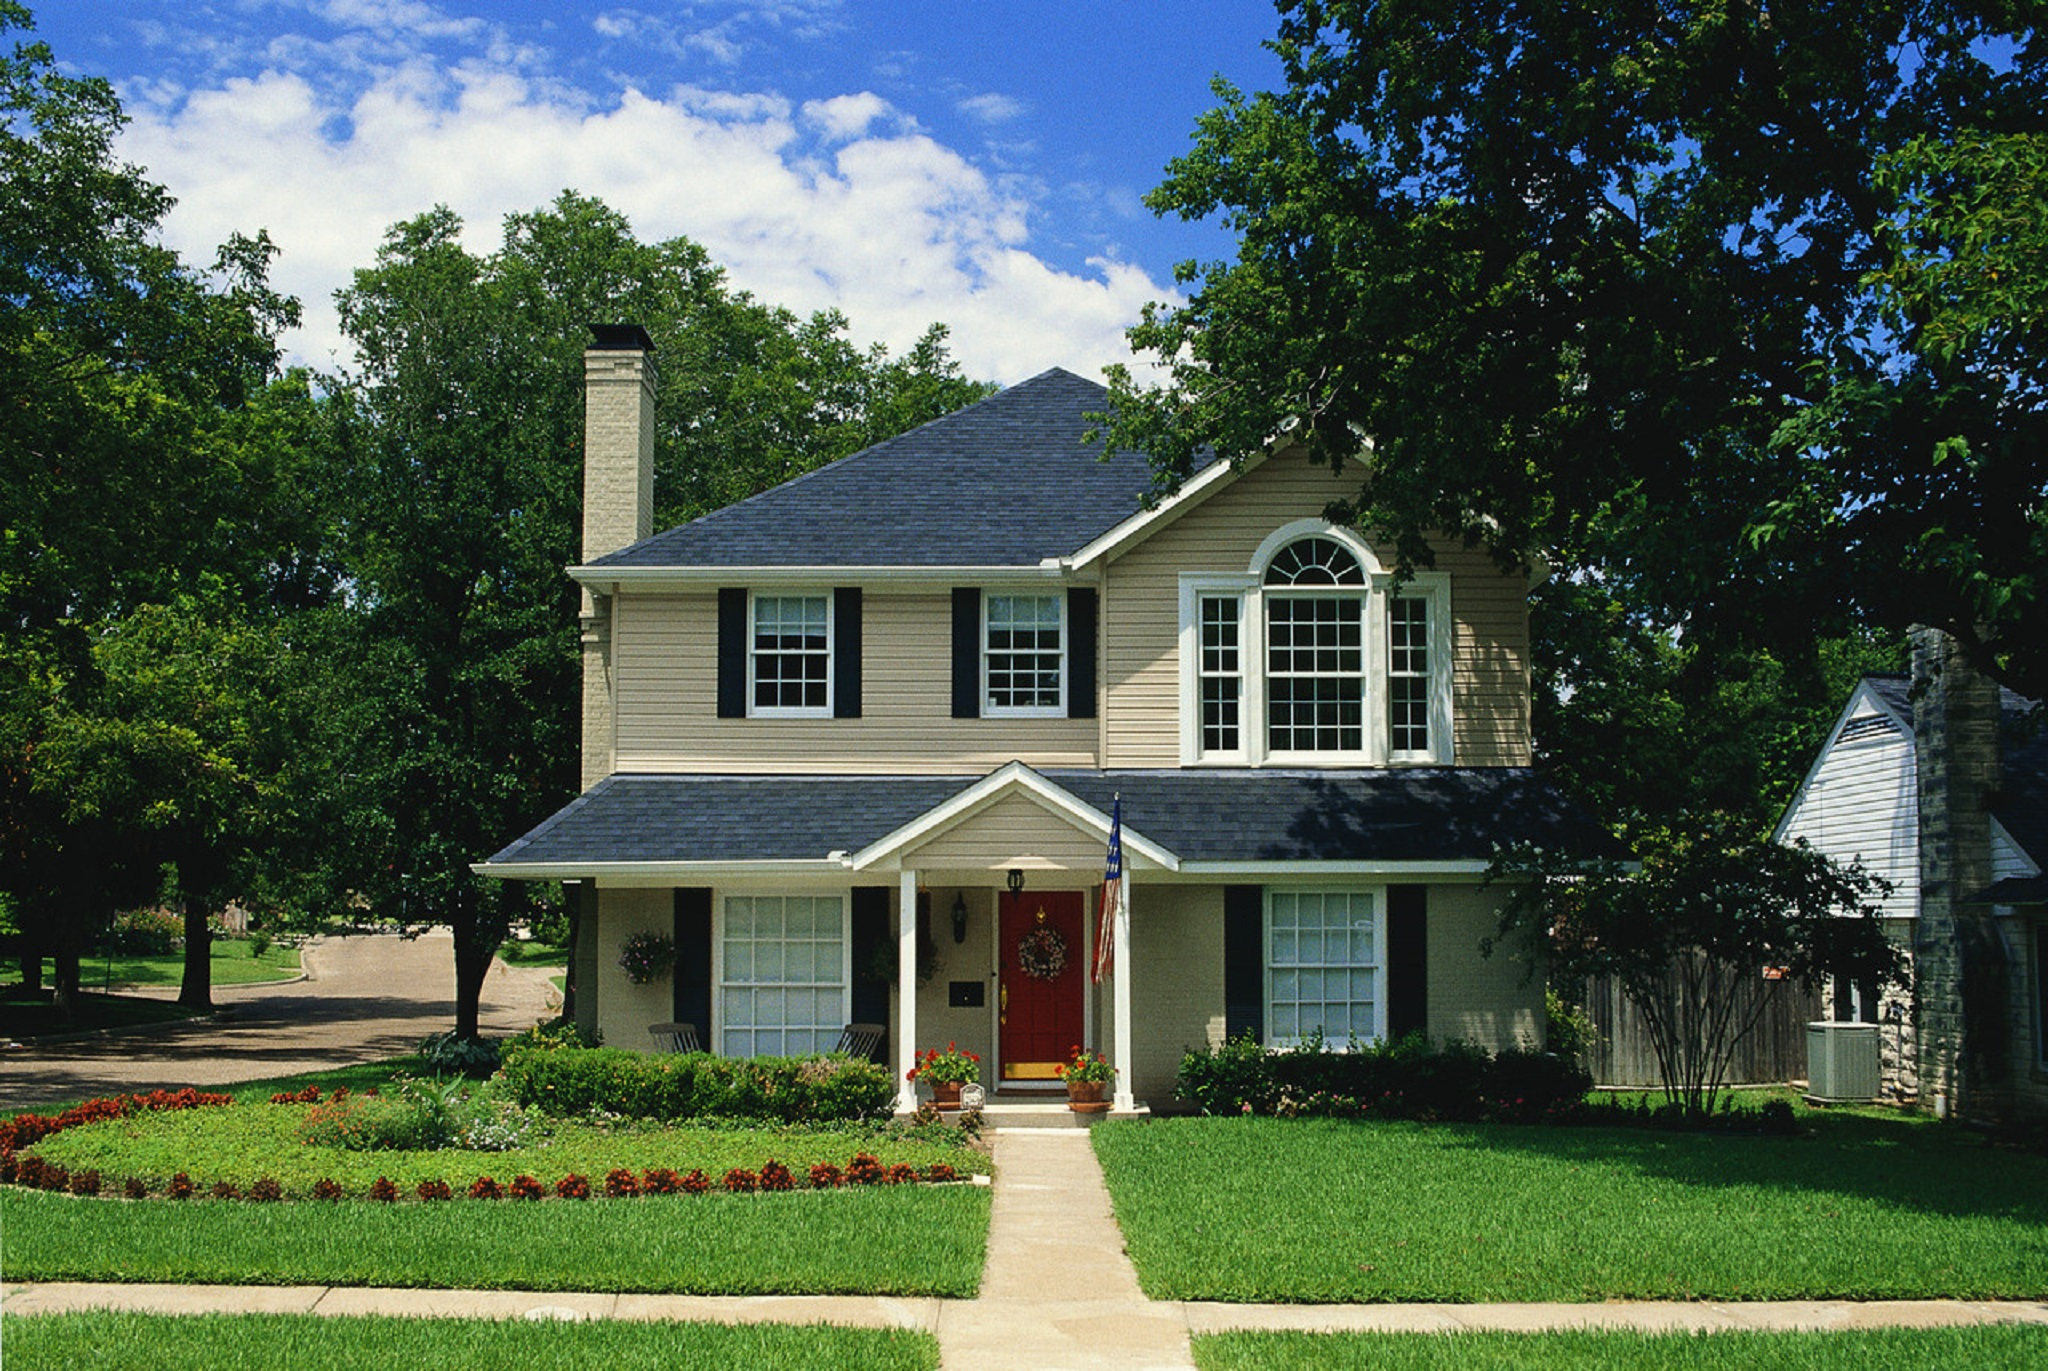 Prune, Trim, Pull for Best Curb Appeal